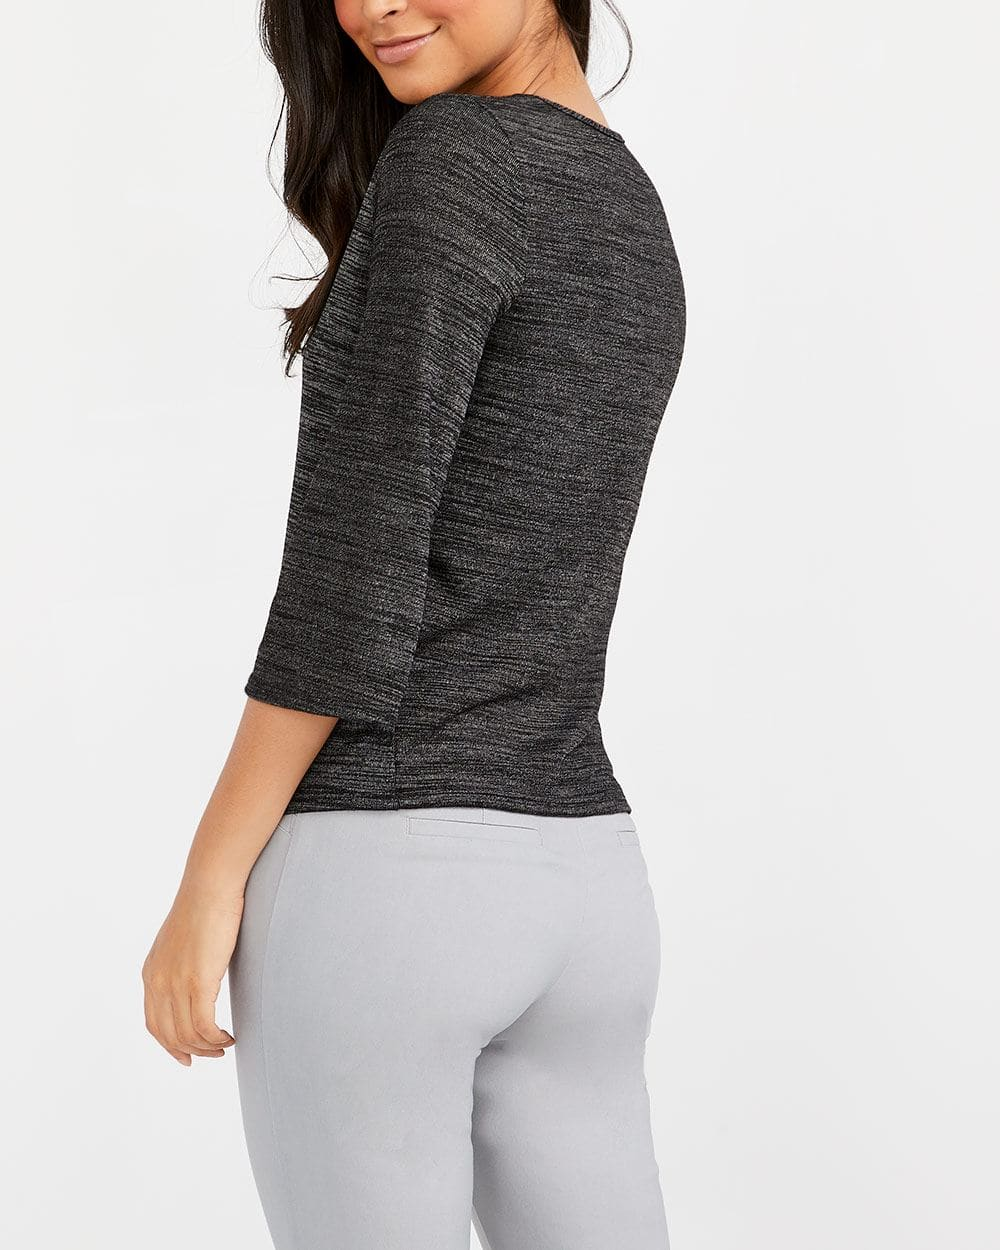 Knot Detail Marled Top